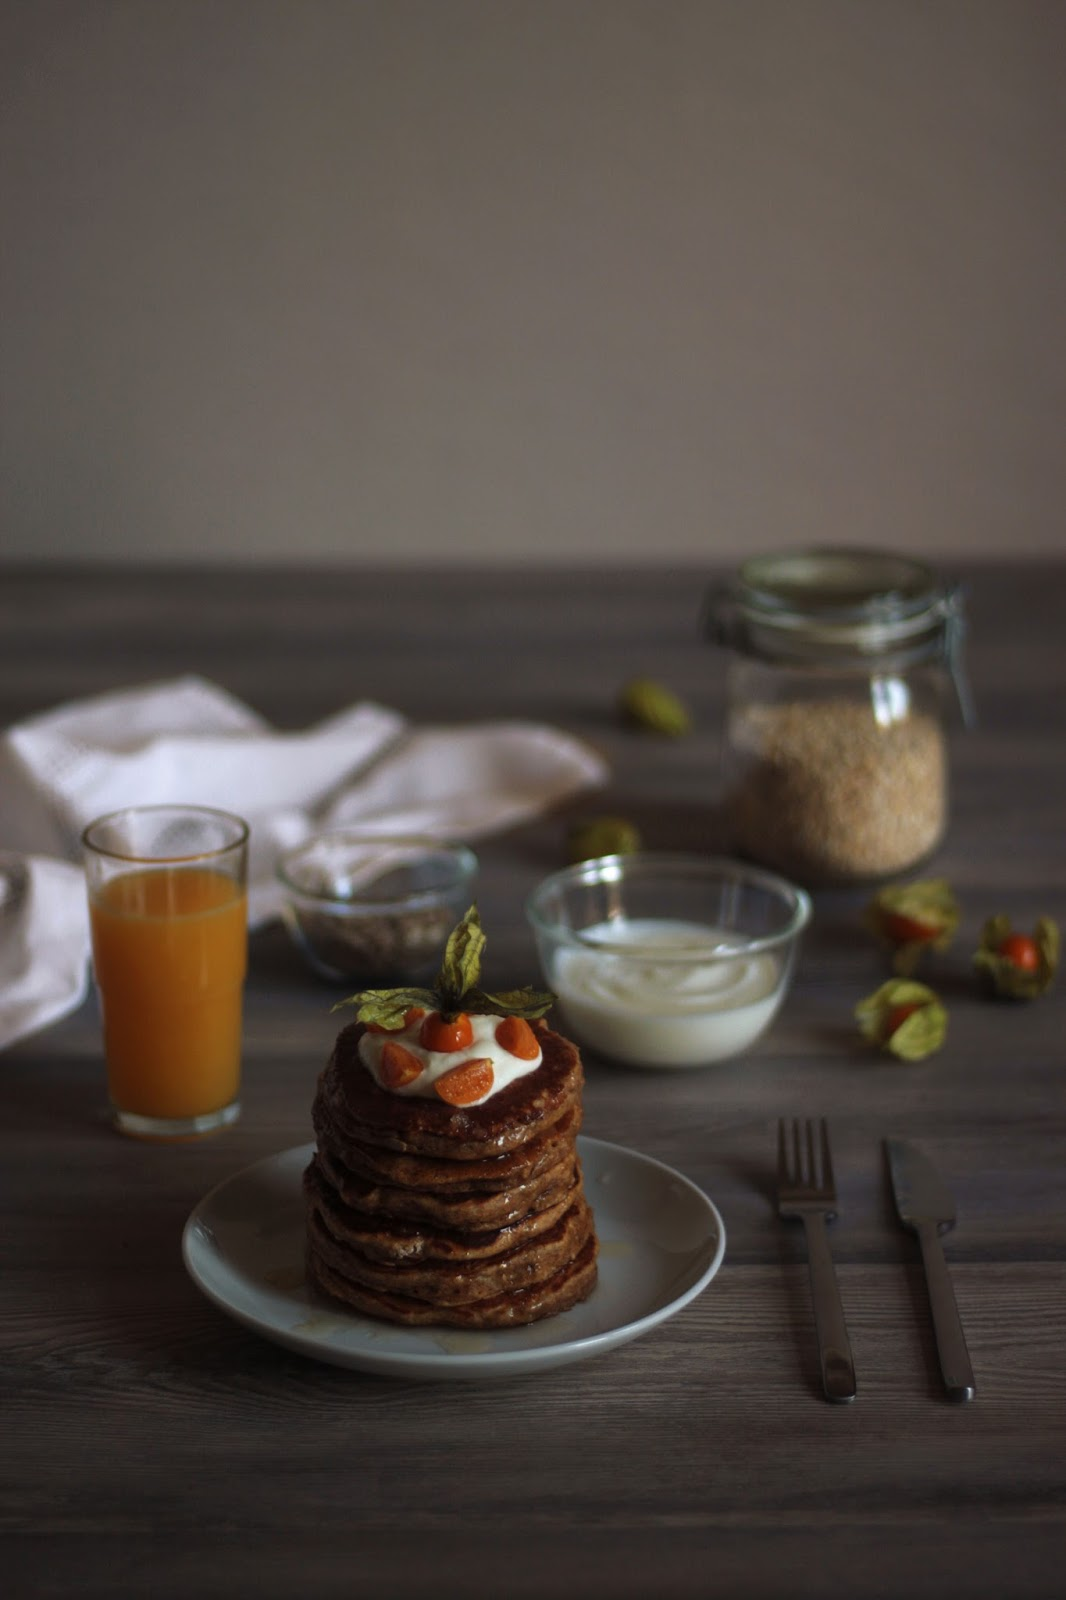 Sweet and Healthy Oatmeal Pancakes with Greek Yoghurt, Honey and Physalis -brought to you by Pancake Stories.